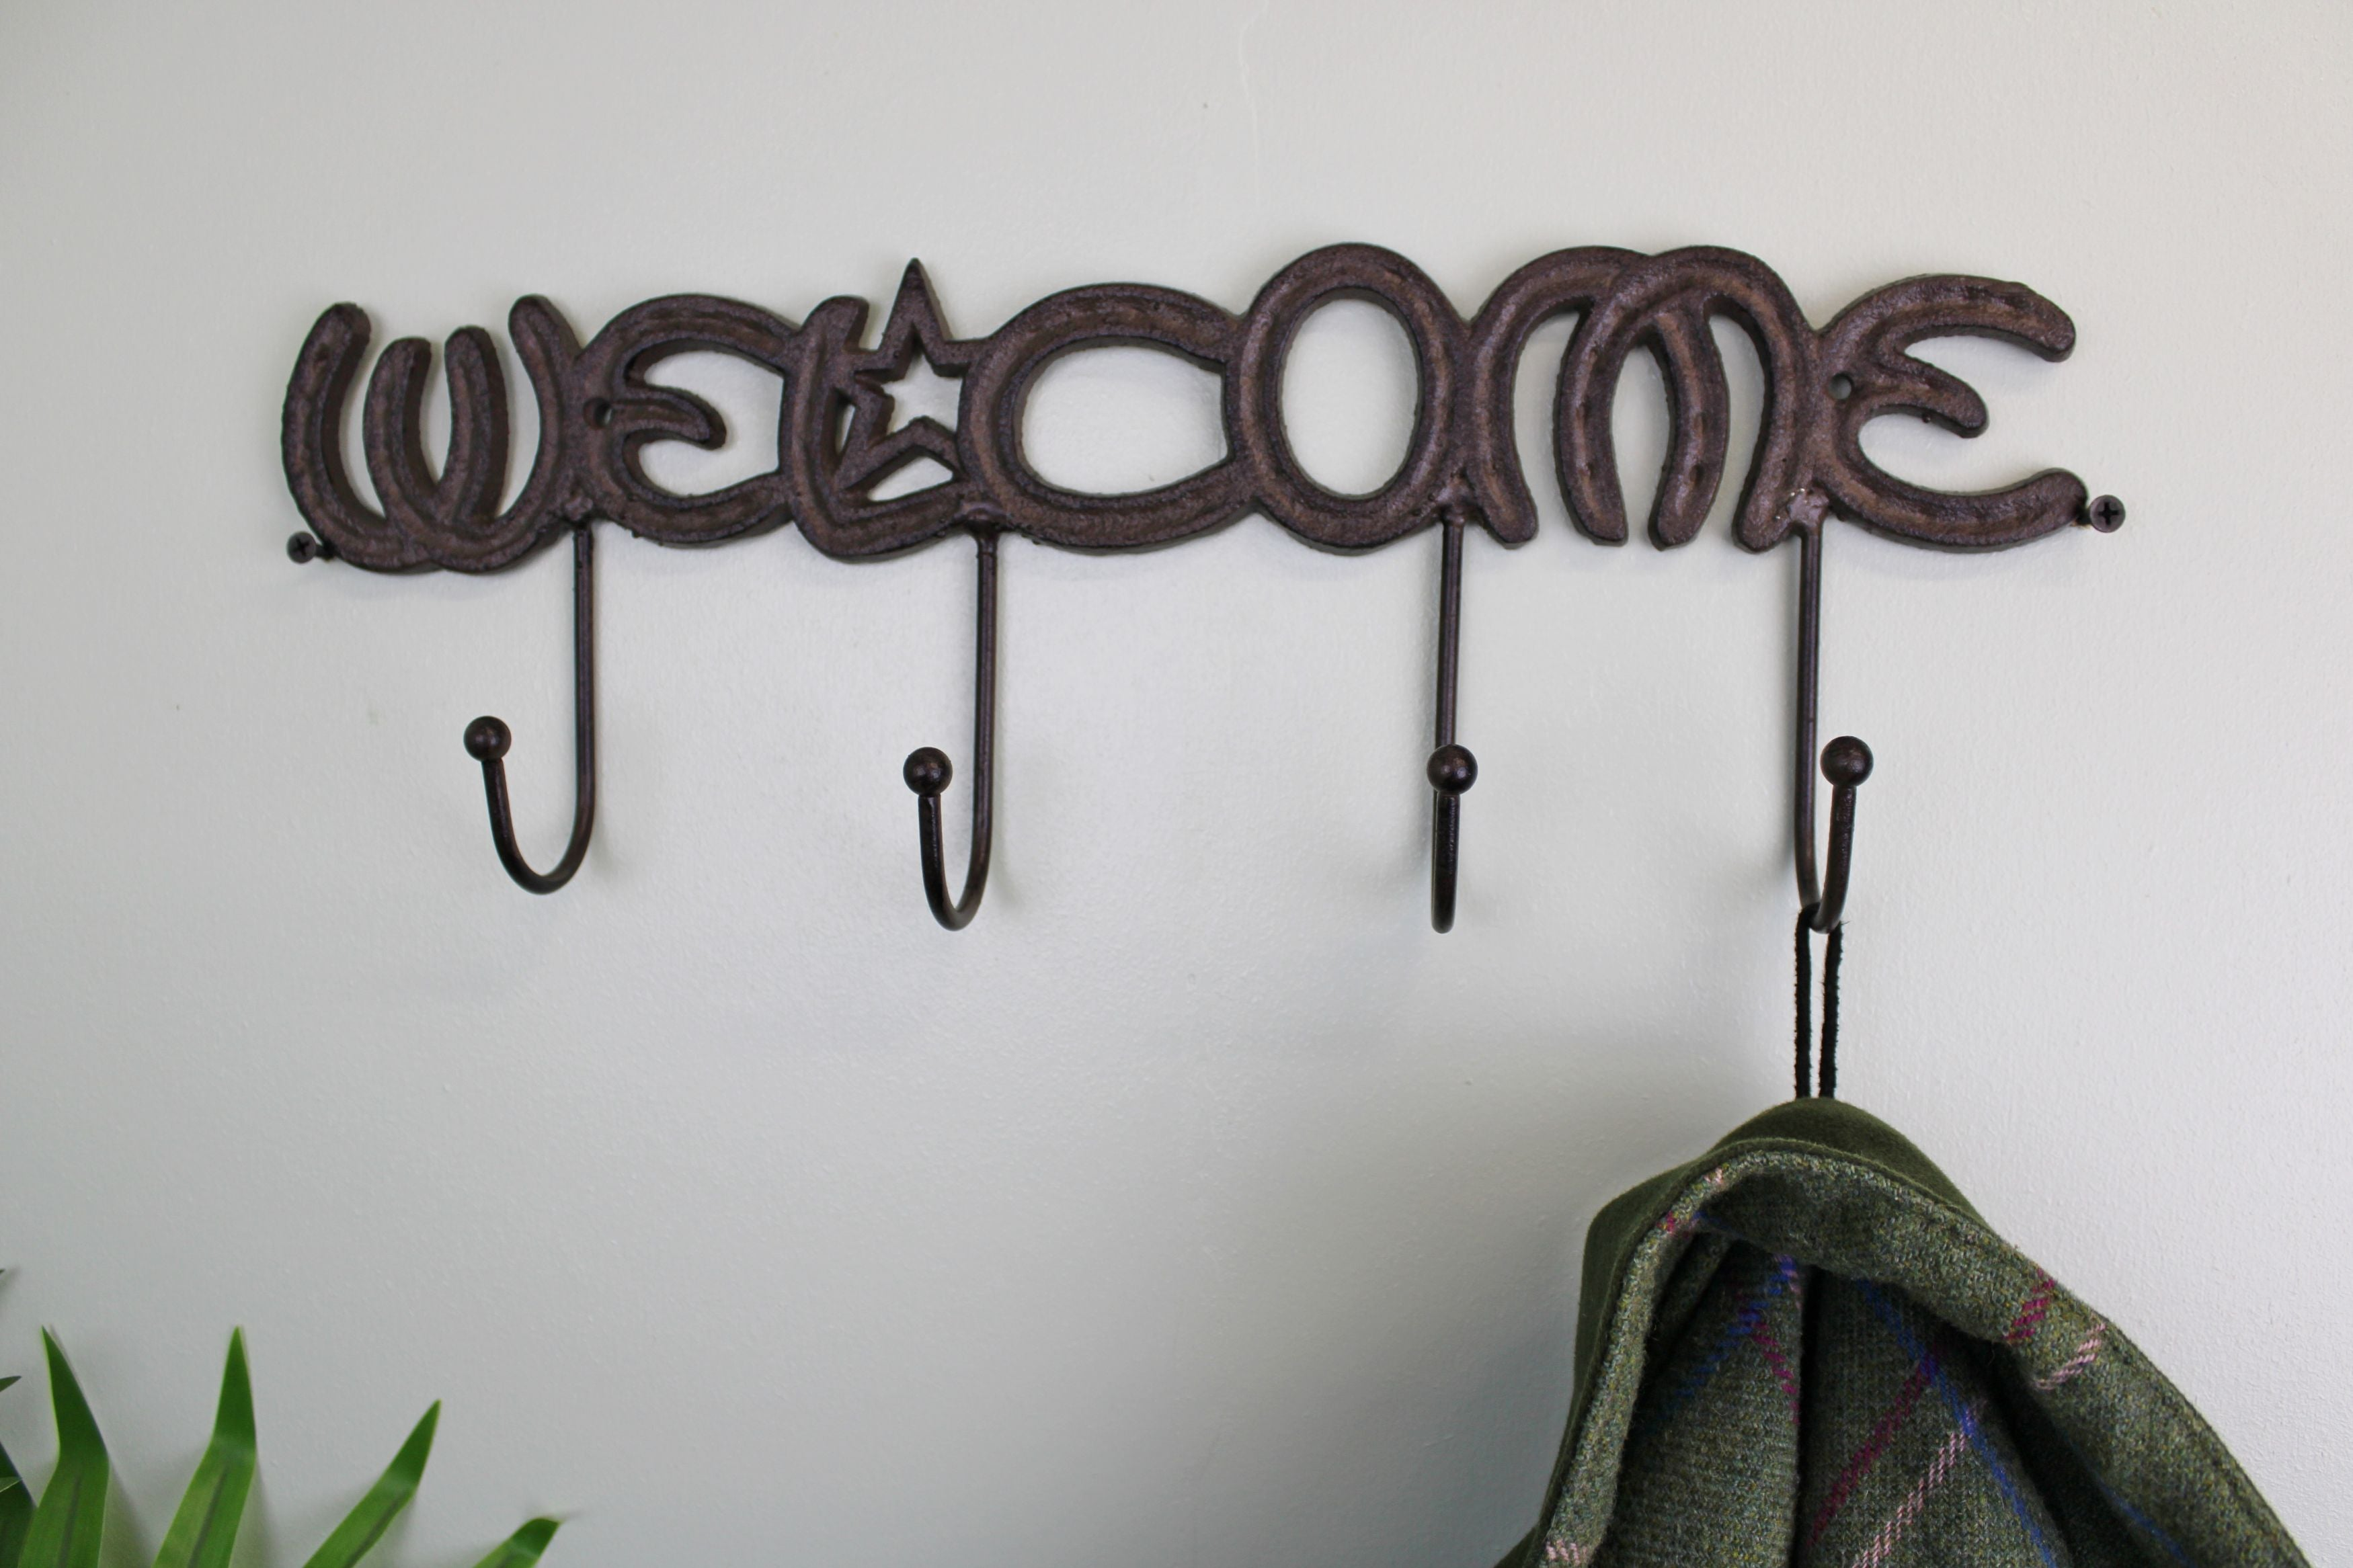 Rustic Cast Iron Wall Hooks, Welcome, Clasps & Hooks by Low Cost Gifts